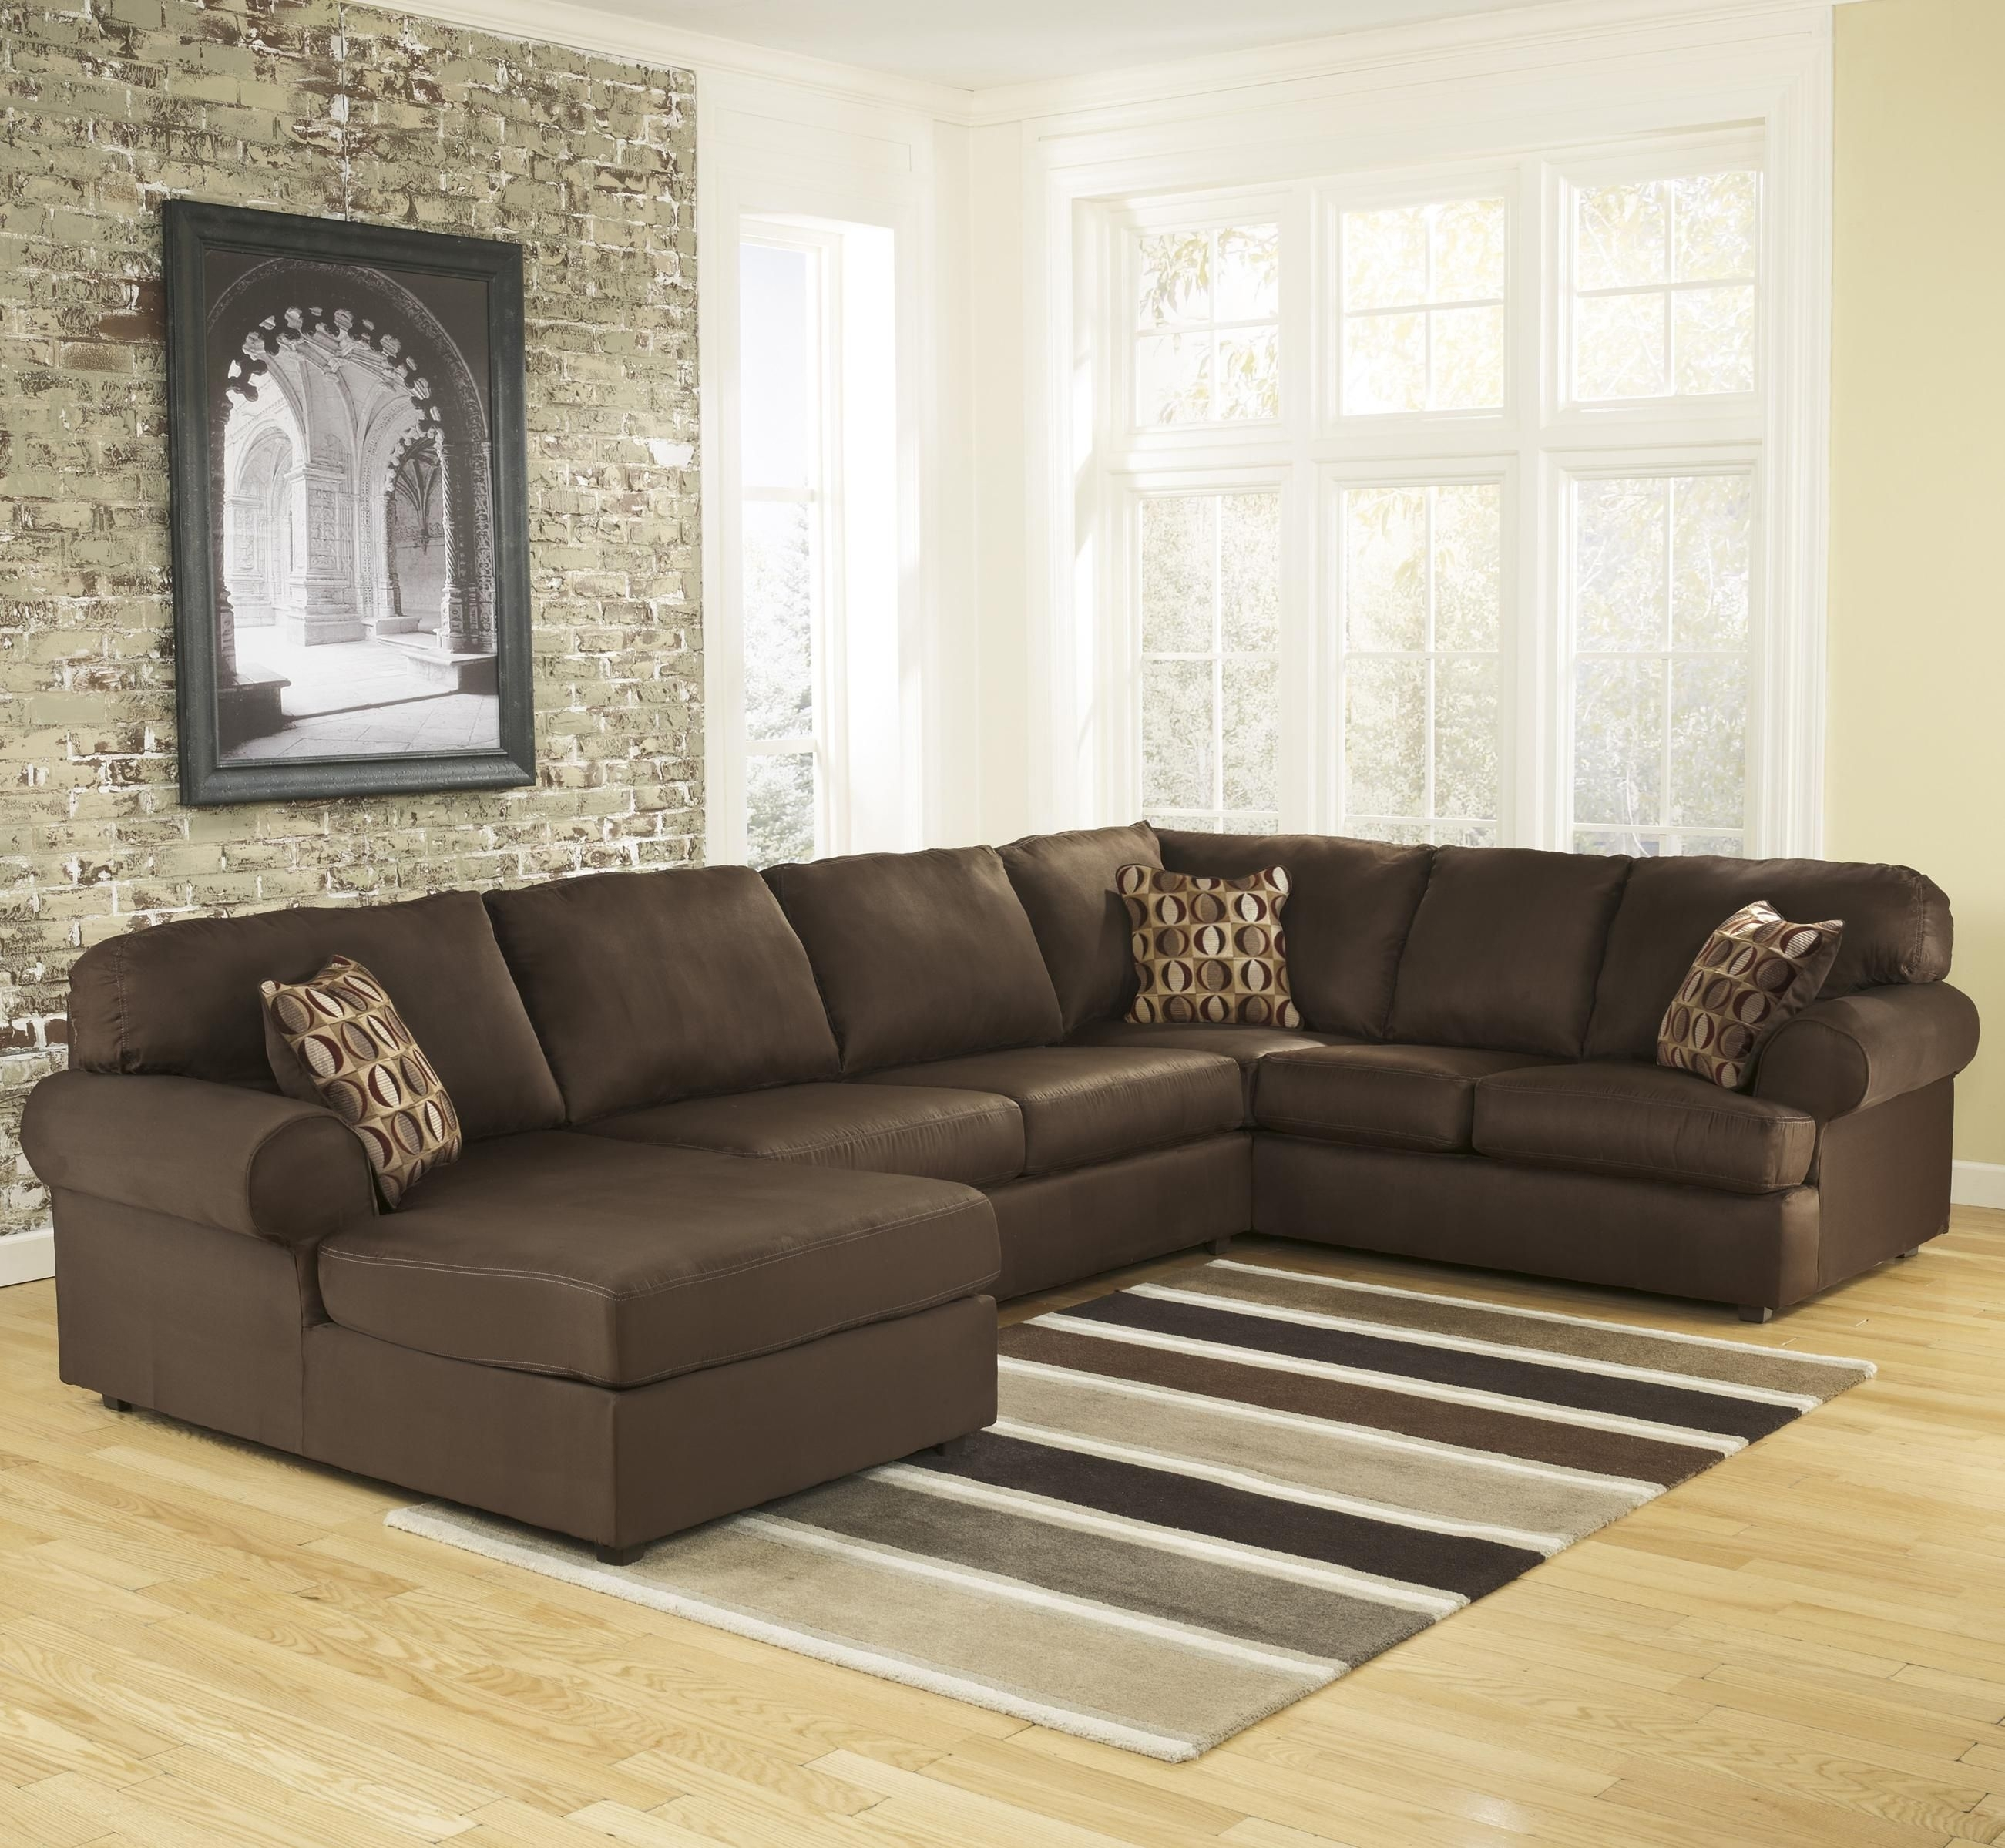 Signature Designashley Cowan - Cafe Roll Arm Left Facing Corner throughout Joplin Mo Sectional Sofas (Image 8 of 10)